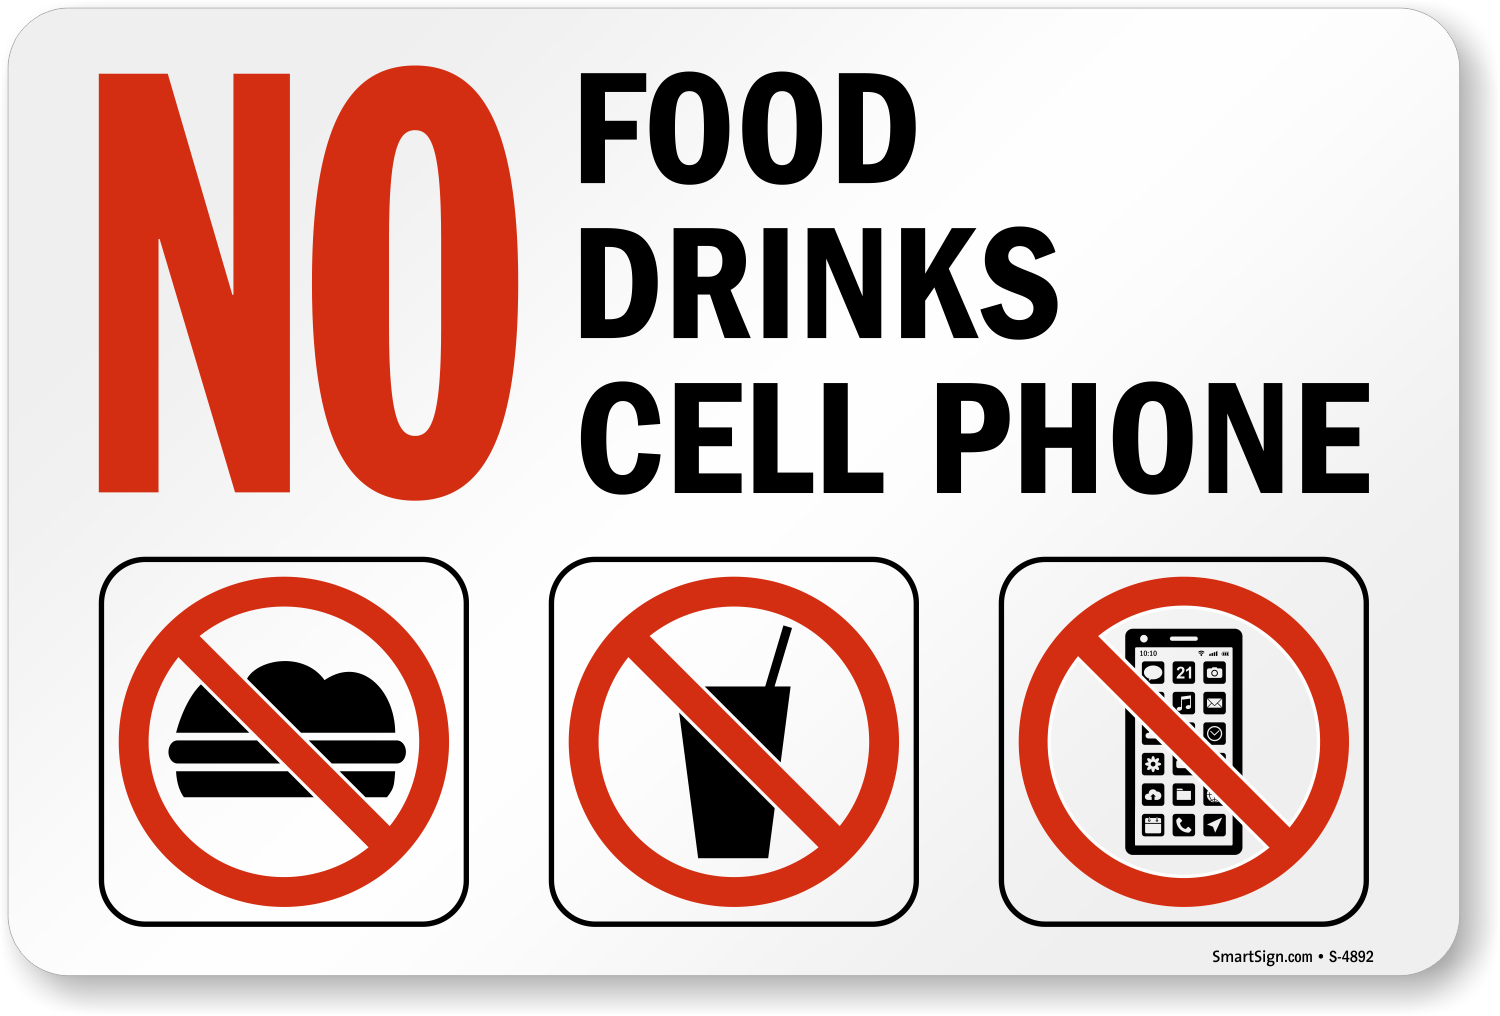 No Food Drinks Cell Phone Signs, No Cell Phone Signs, SKU